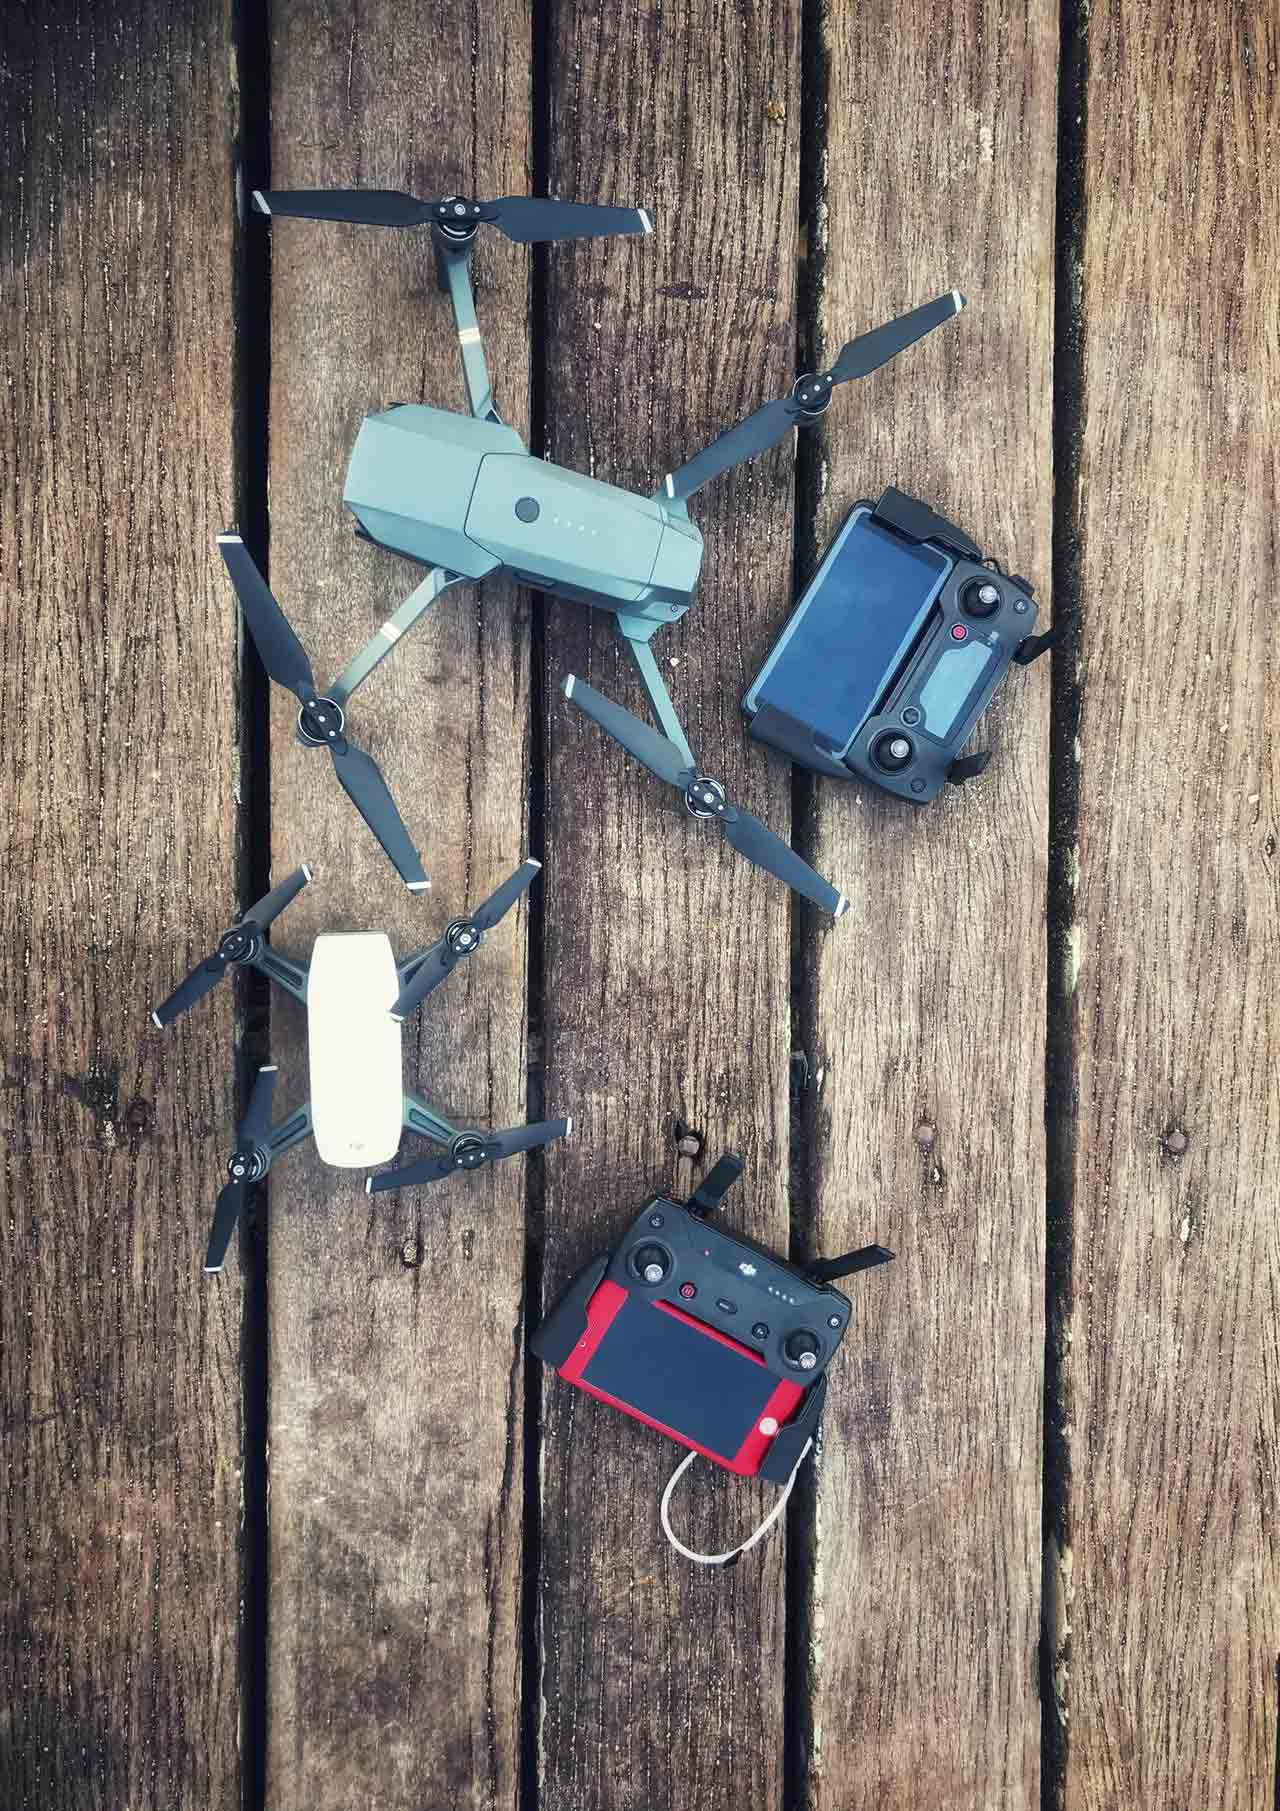 two-assorted-quadcopter-drones-with-controllers-810493